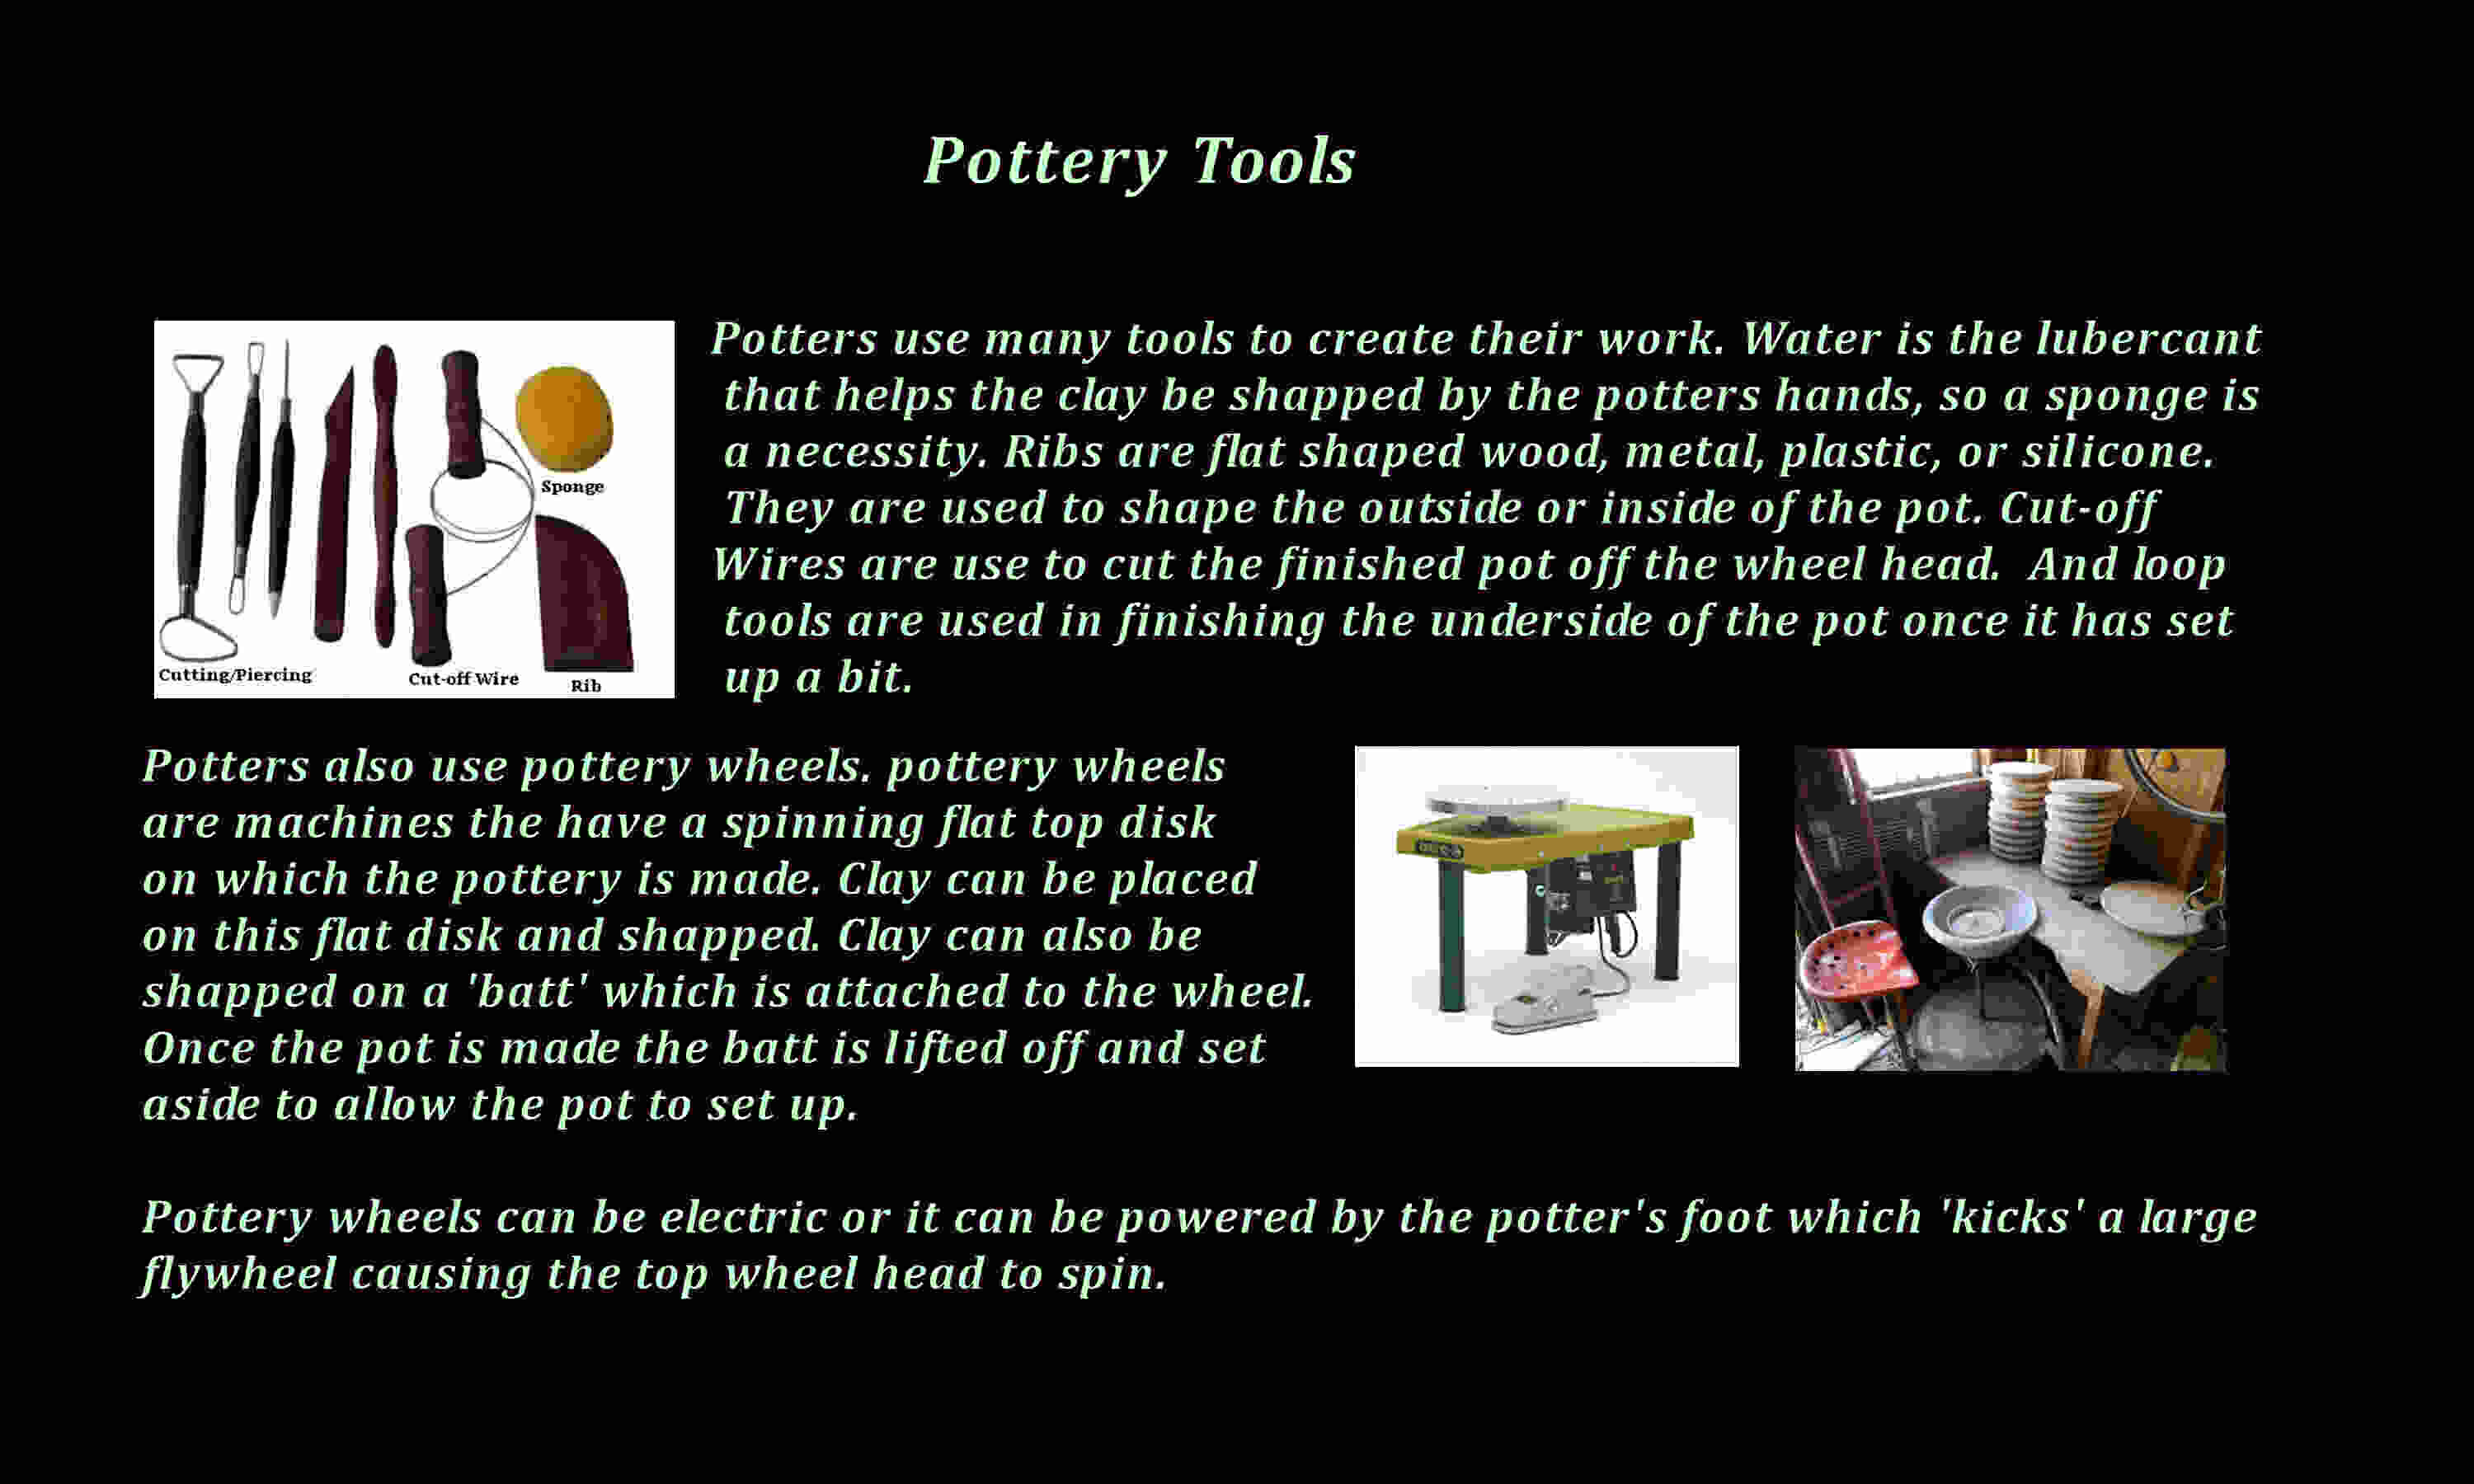 What kind of tools does a potter use?